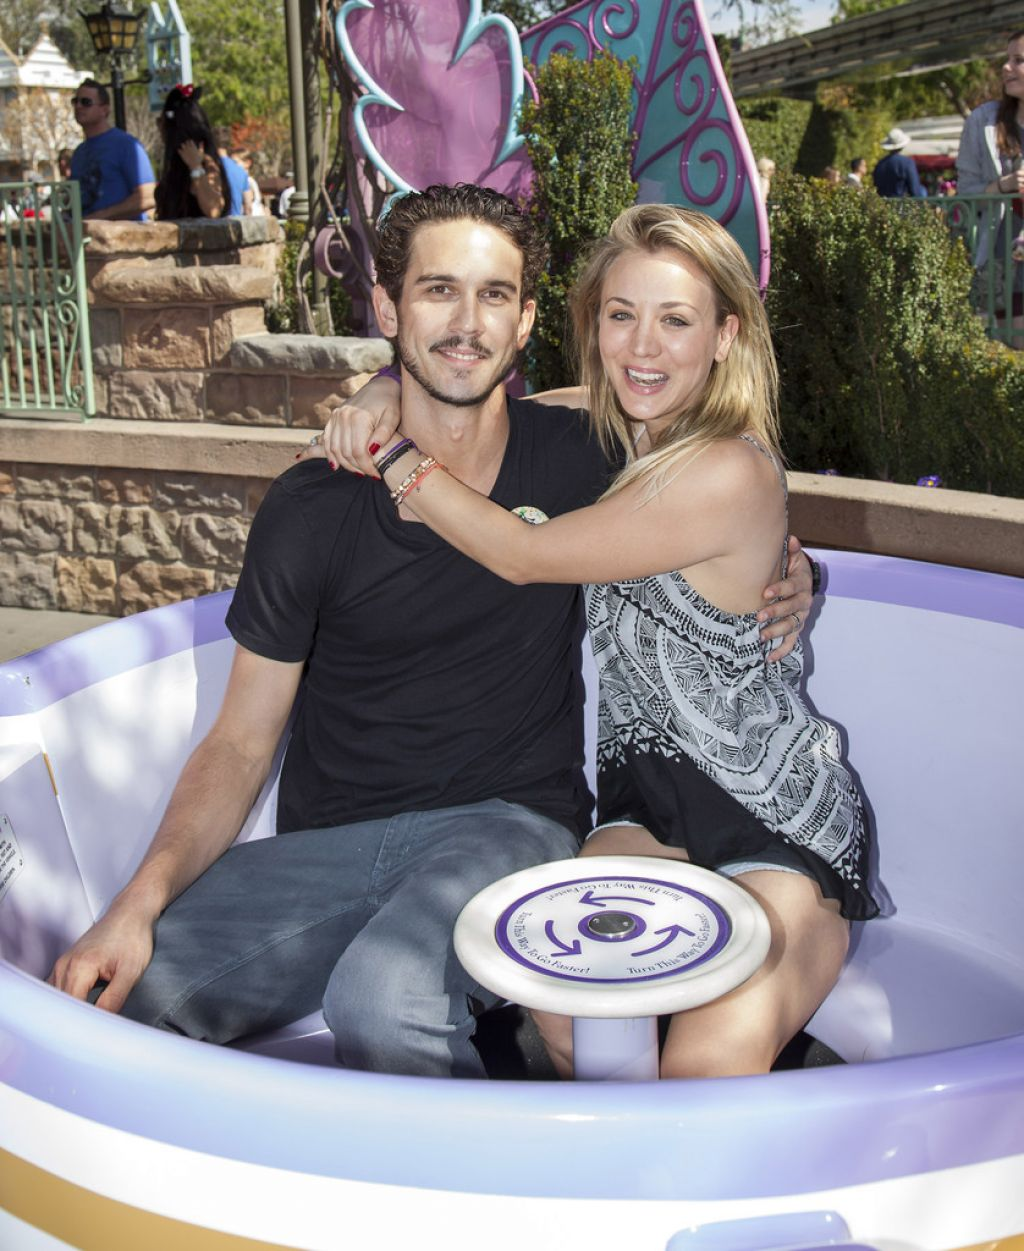 Kaley Cuoco at Disneyland - February 2014